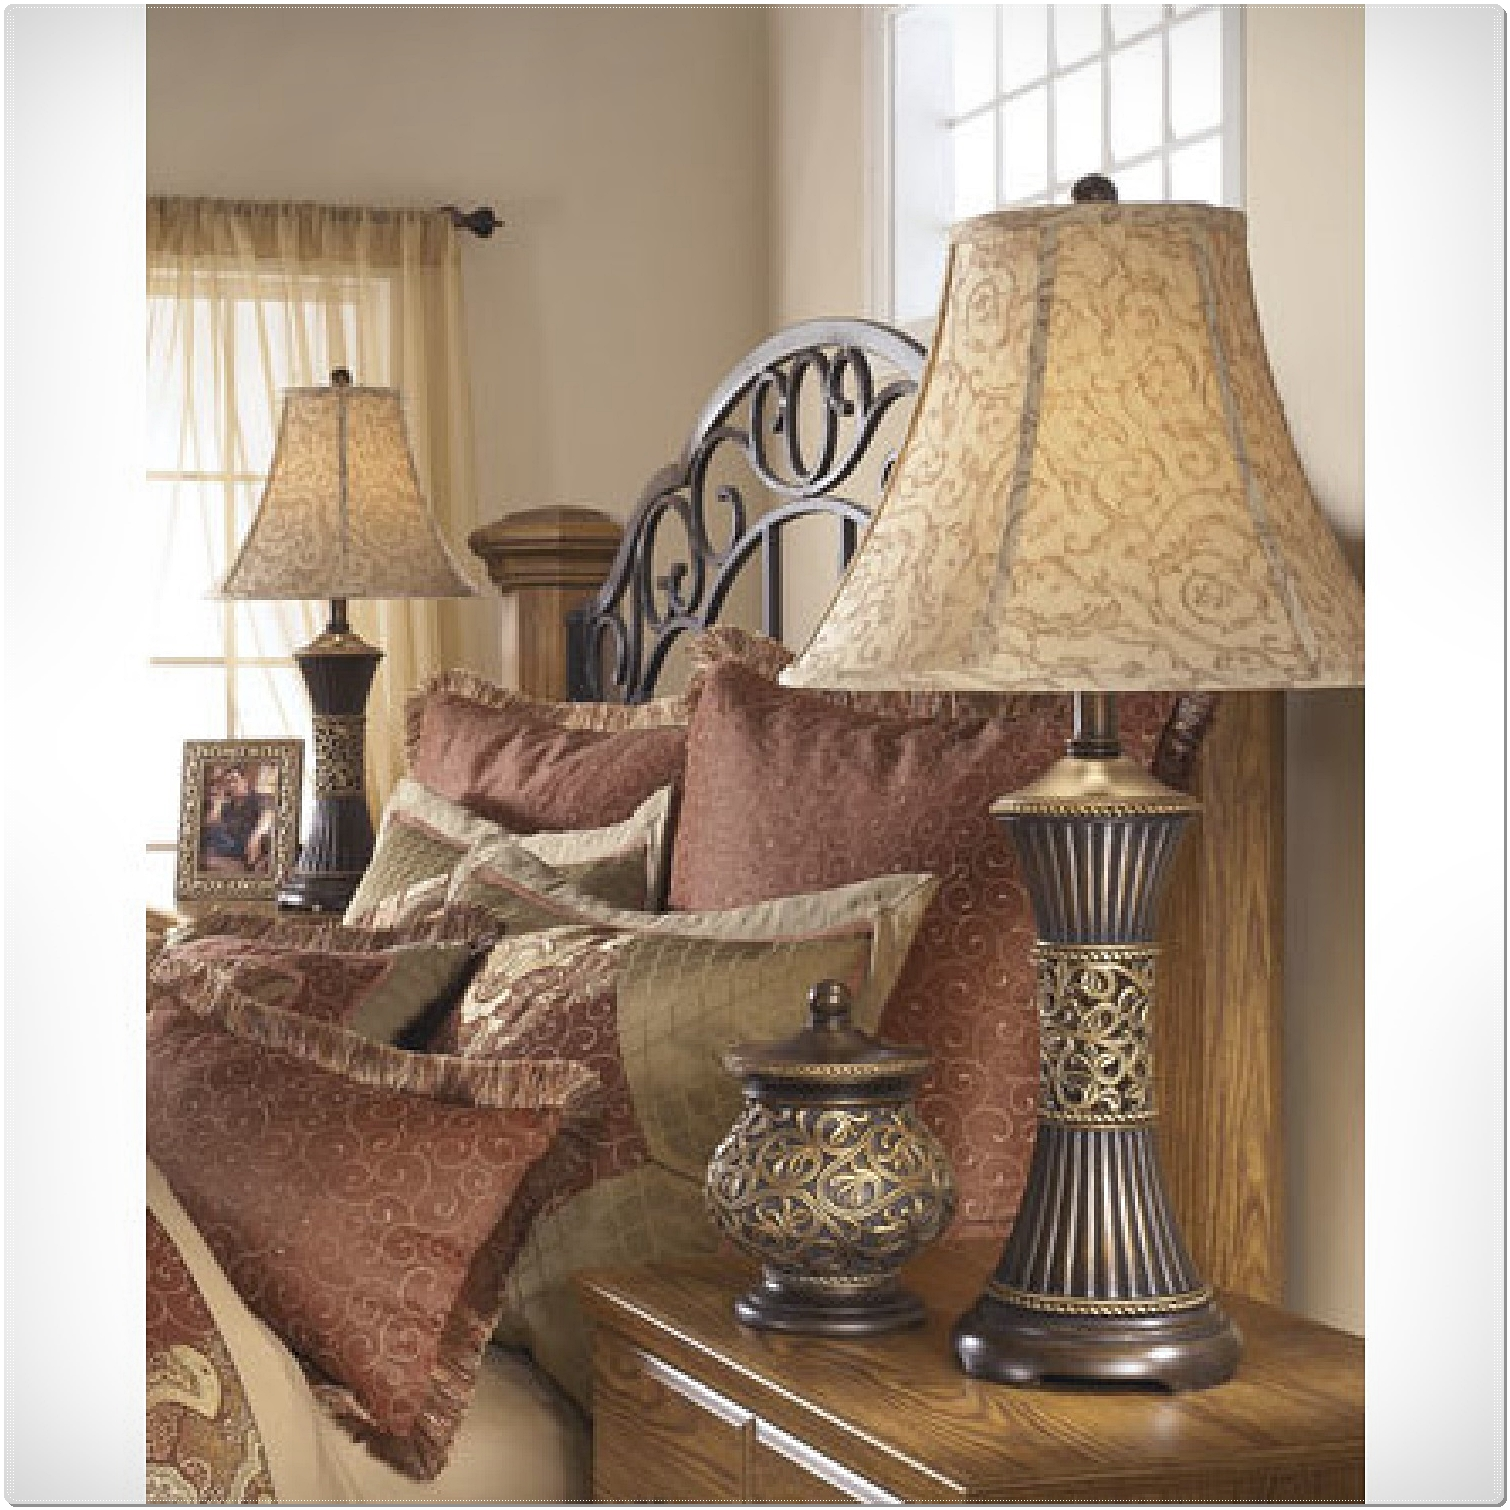 Lamps For Bedroom Nightstands: PAIR OF 2 TABLE LAMPS SHADE LIGHT BEDROOM NIGHTSTAND LAMP